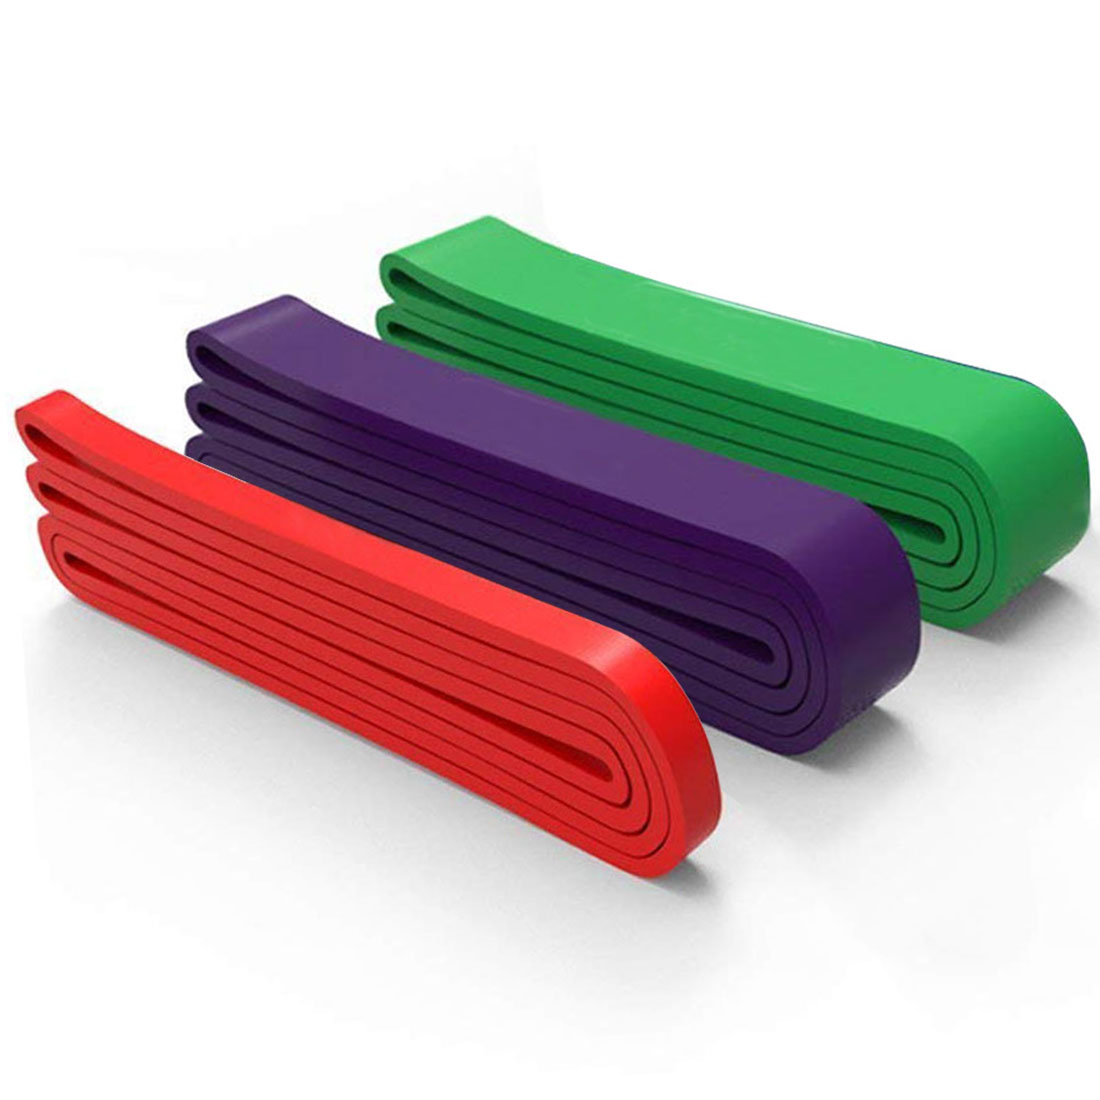 For Health Resistance Loop Bands Exercise Bands Workout Bands,Set of 3 for Fitness Training, Physical Therapy Rehab, Yoga and Pilates Workout